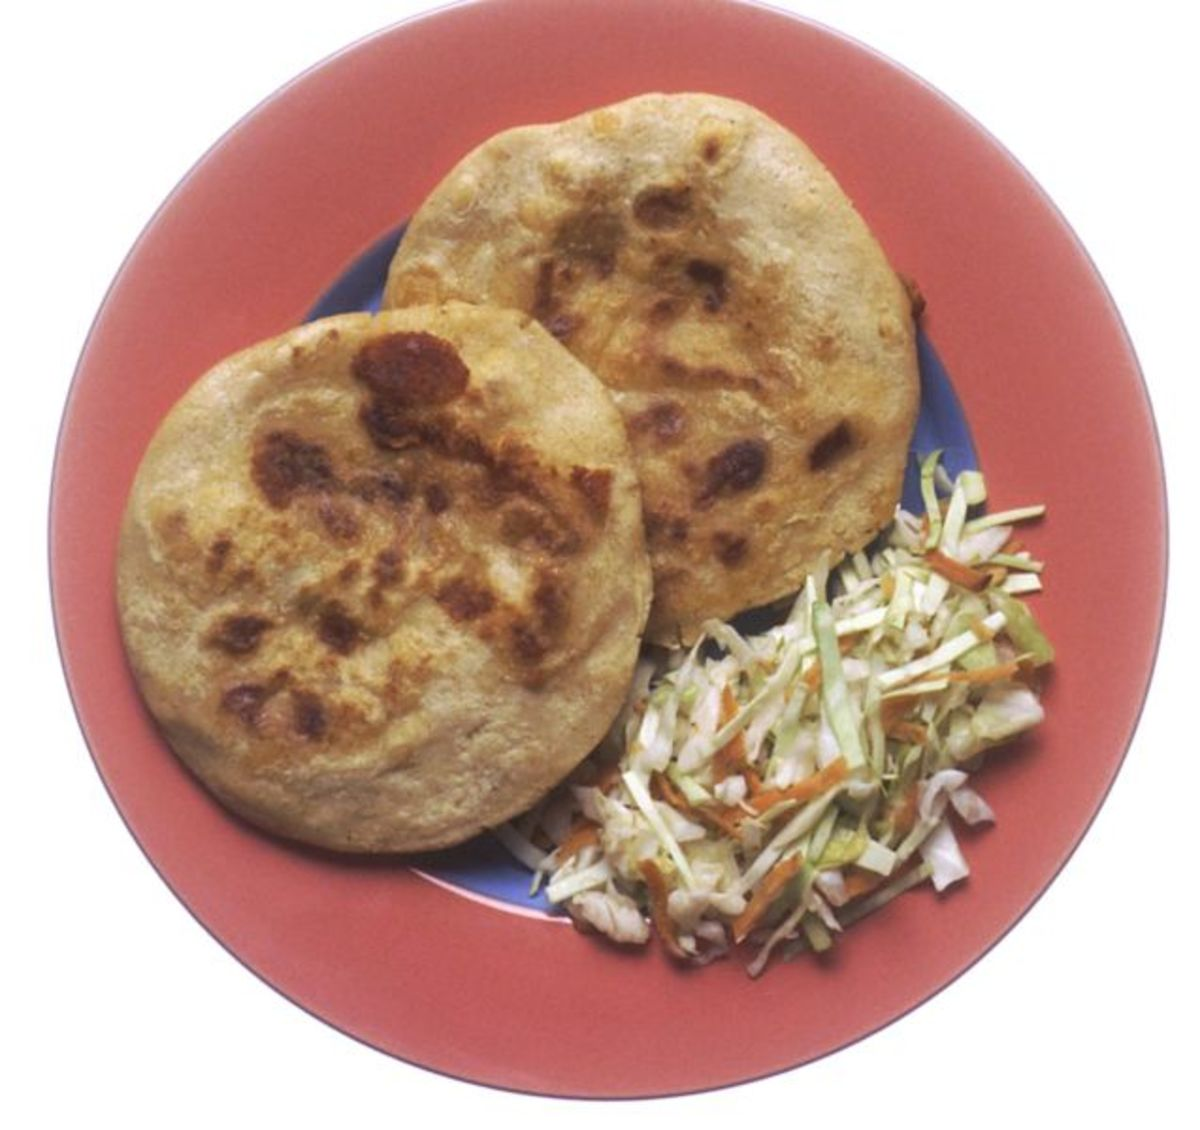 Lucky foods of Texas include cole slaw (for the cabbage). Here you see it with corn cakes.